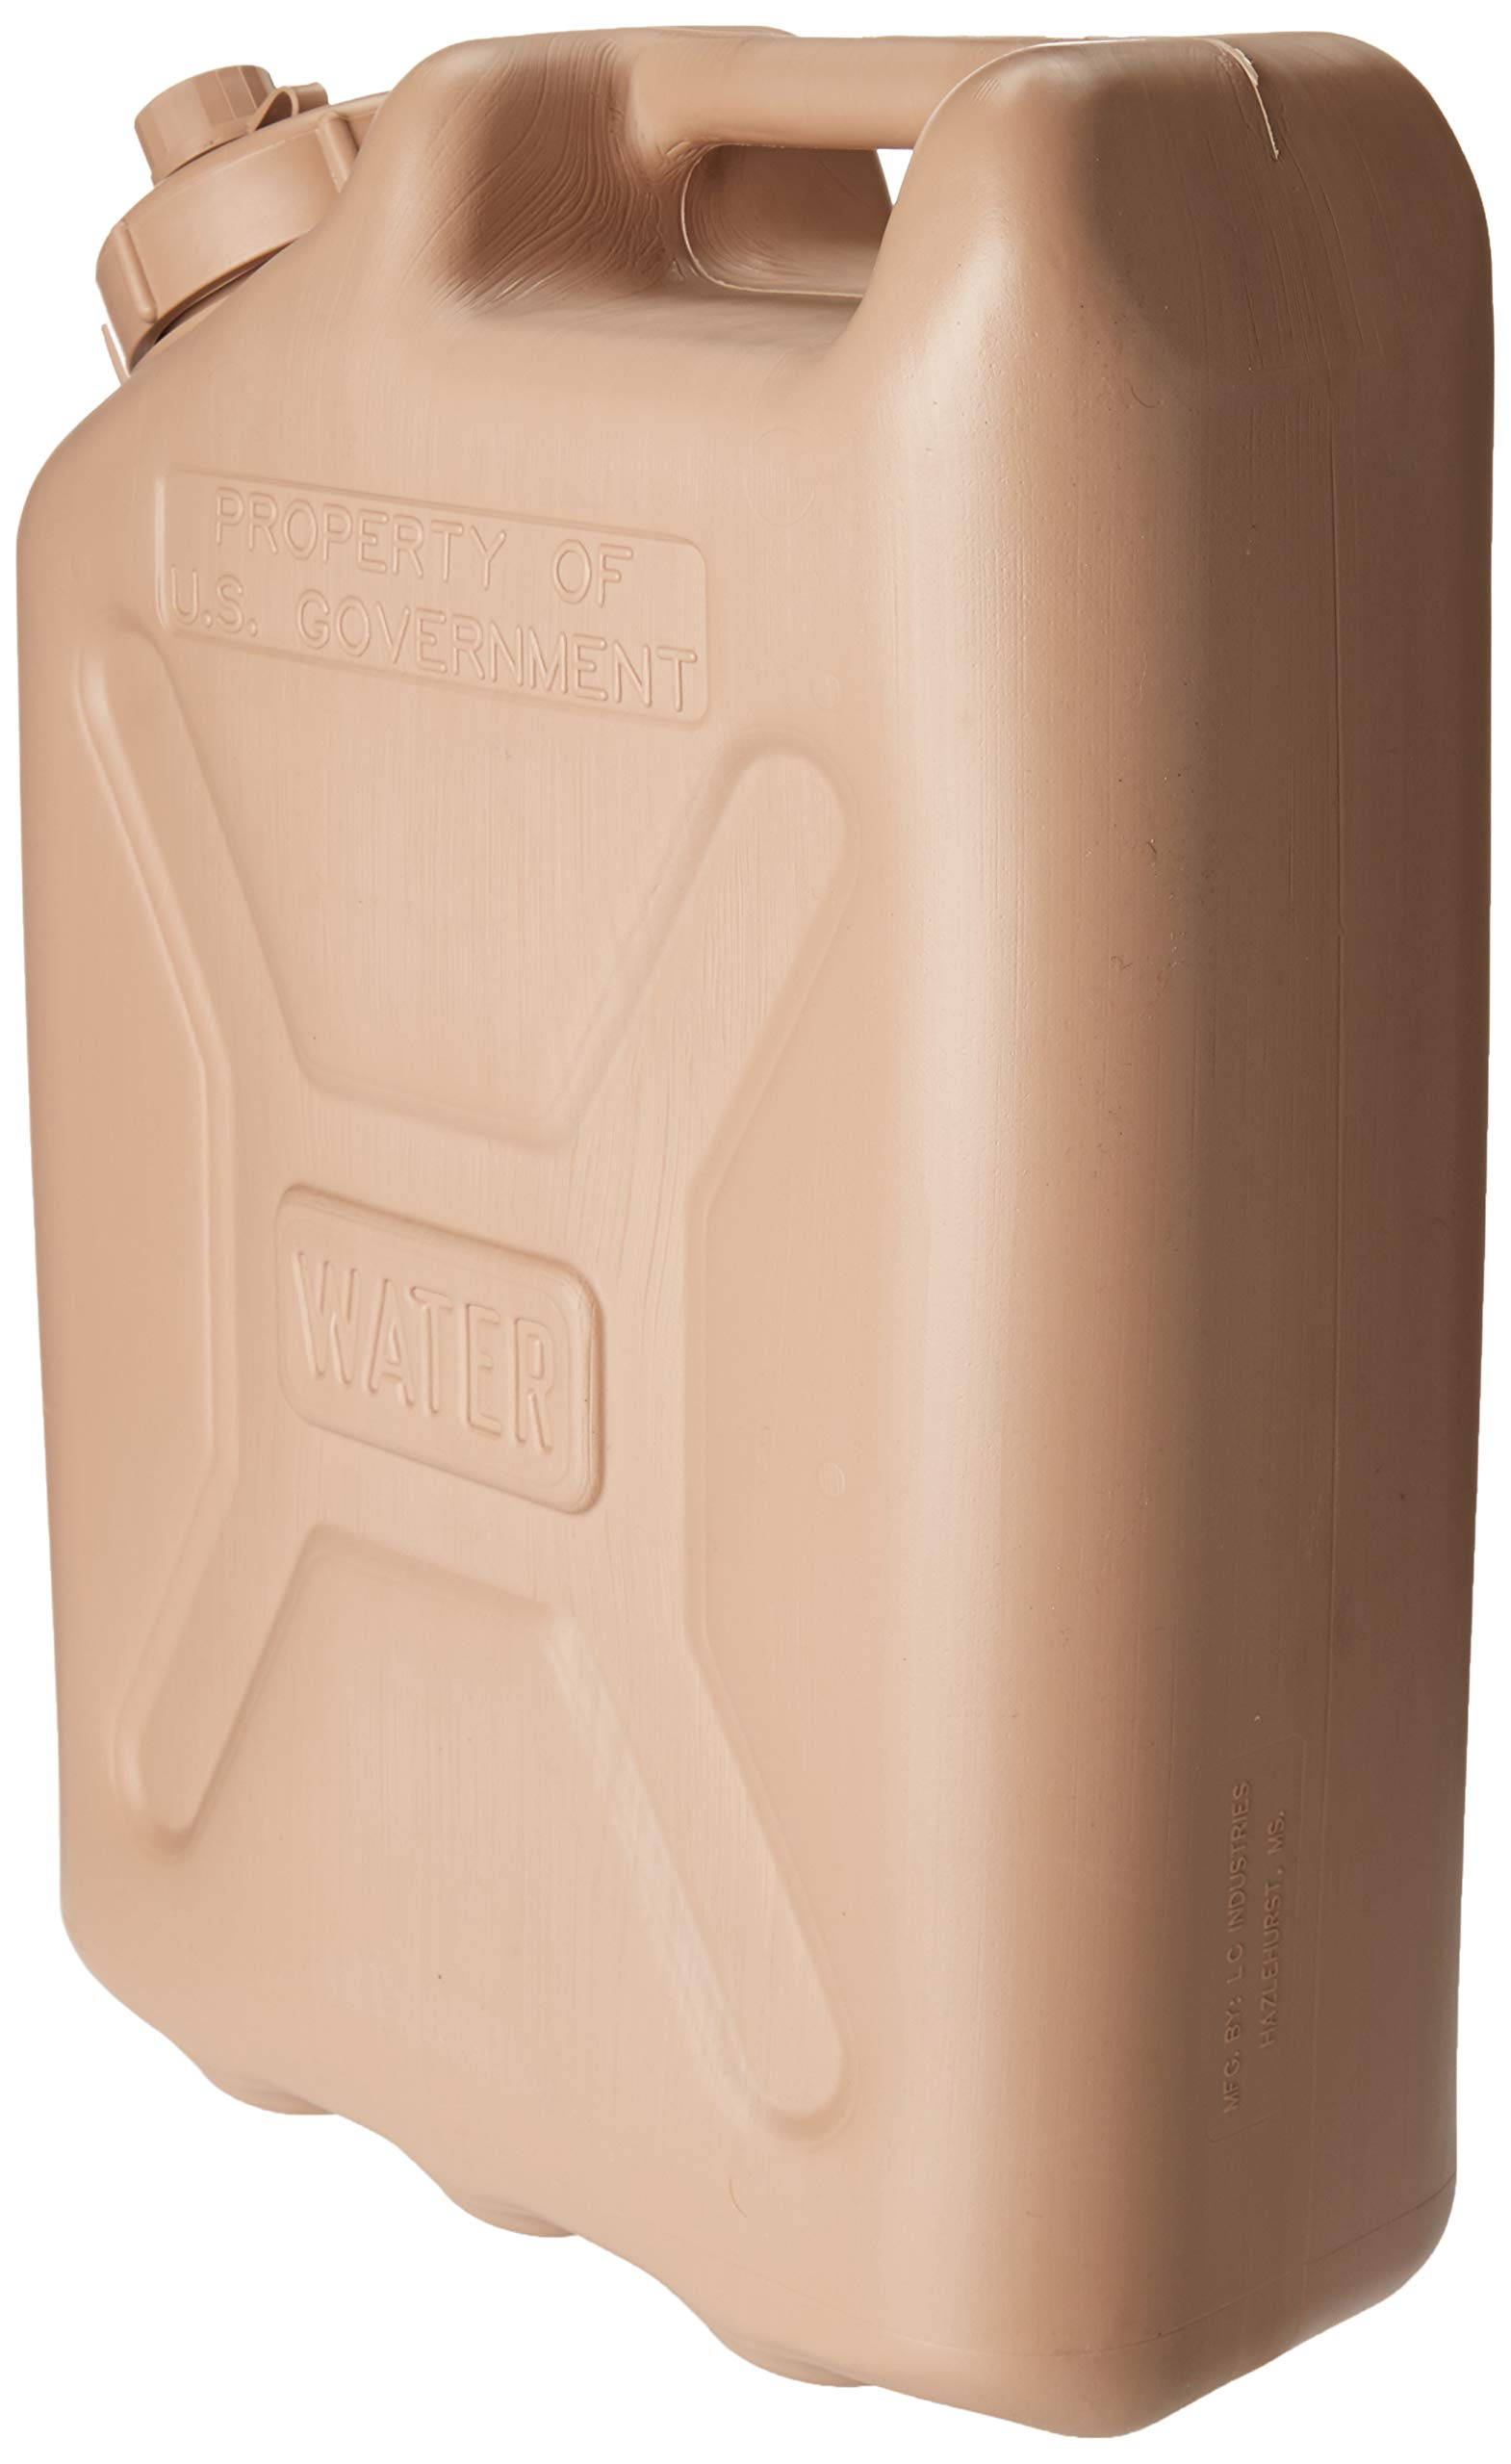 kitchentoolz Premium Military 5 Gallon Water Can - Plastic Jerry Water Can for Camping, Survival and Sports by kitchentoolz (Image #2)